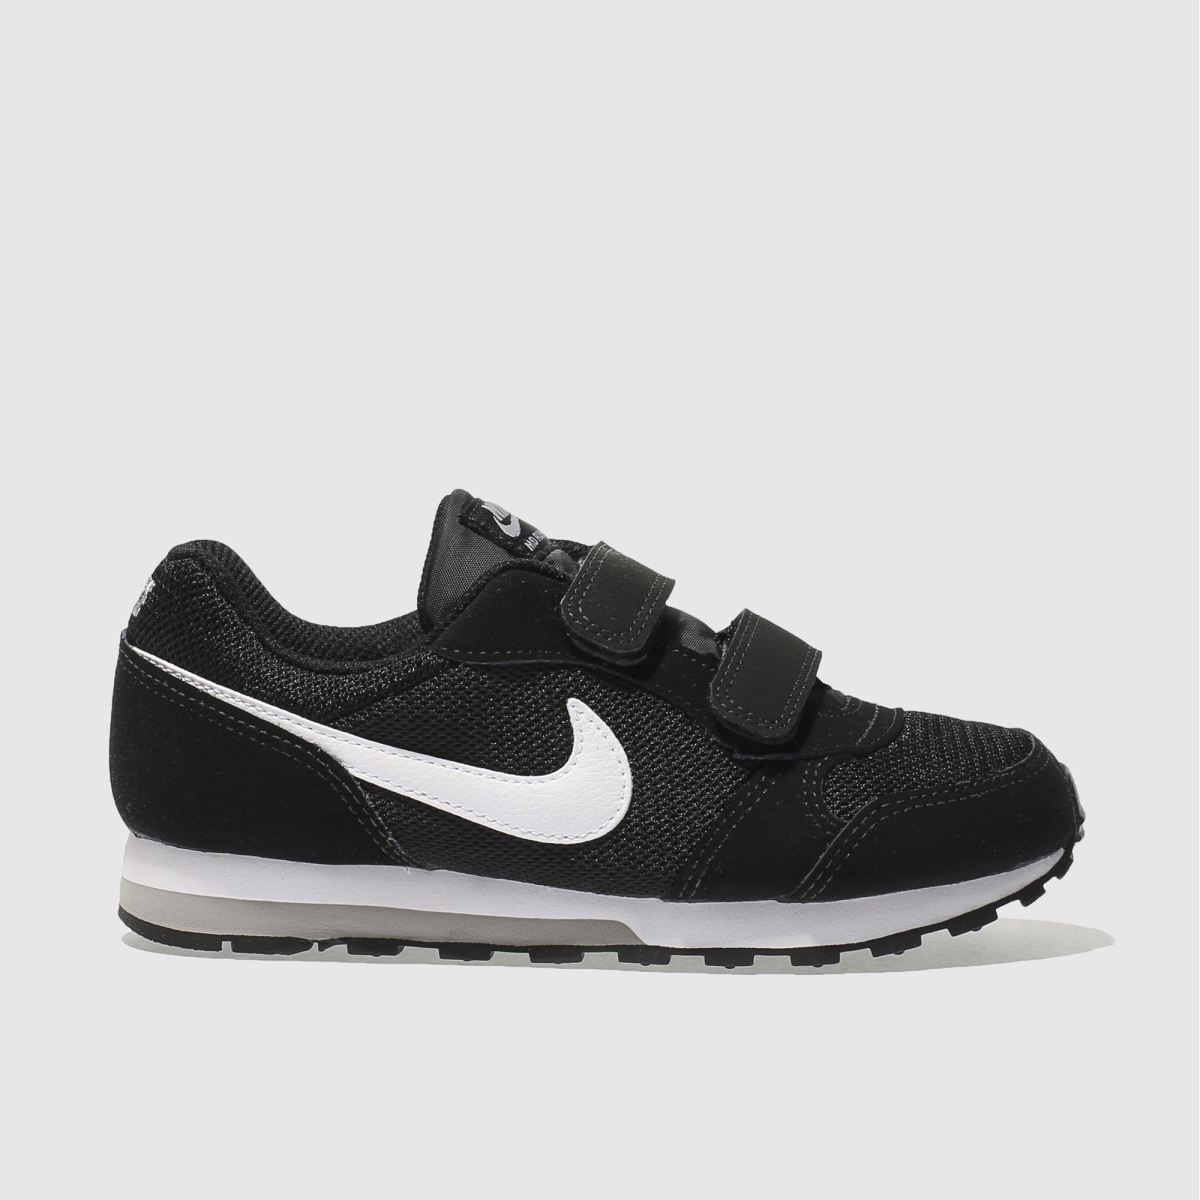 9daa7a40454d ... Nike Black   White Md Runner 2 Boys Junior NIKE Free Run ...